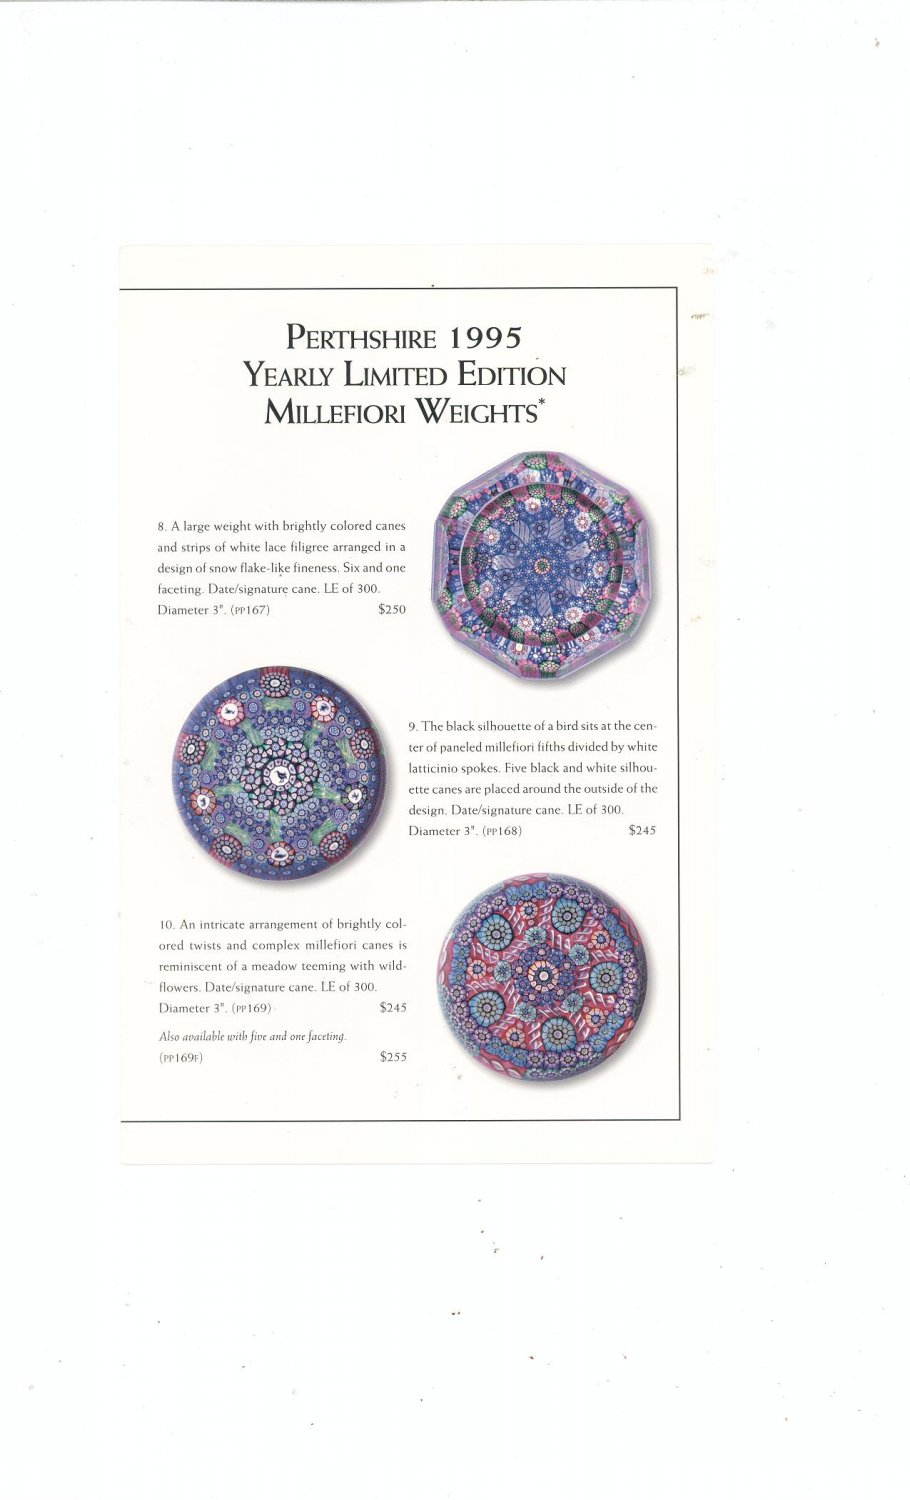 Perthshire Paperweights 1995 Yearly Ltd. Edition Millefiori Catalog / Brochure by L. H. Selman Ltd.